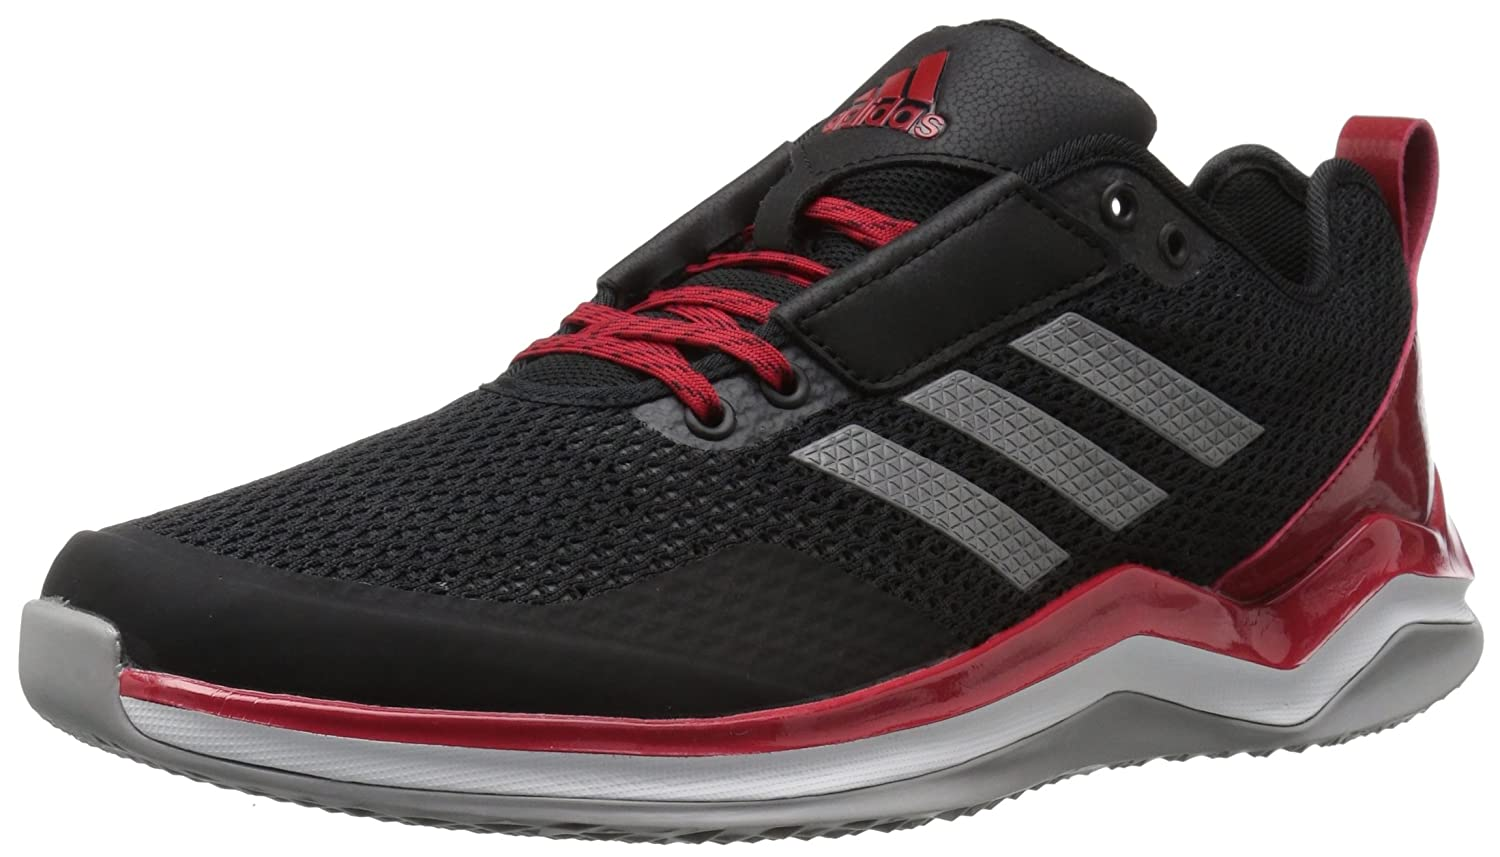 adidas メンズ Speed Trainer 3.0 B01LWMXC8G 7 D(M) US|Black/Iron/Power Red Black/Iron/Power Red 7 D(M) US